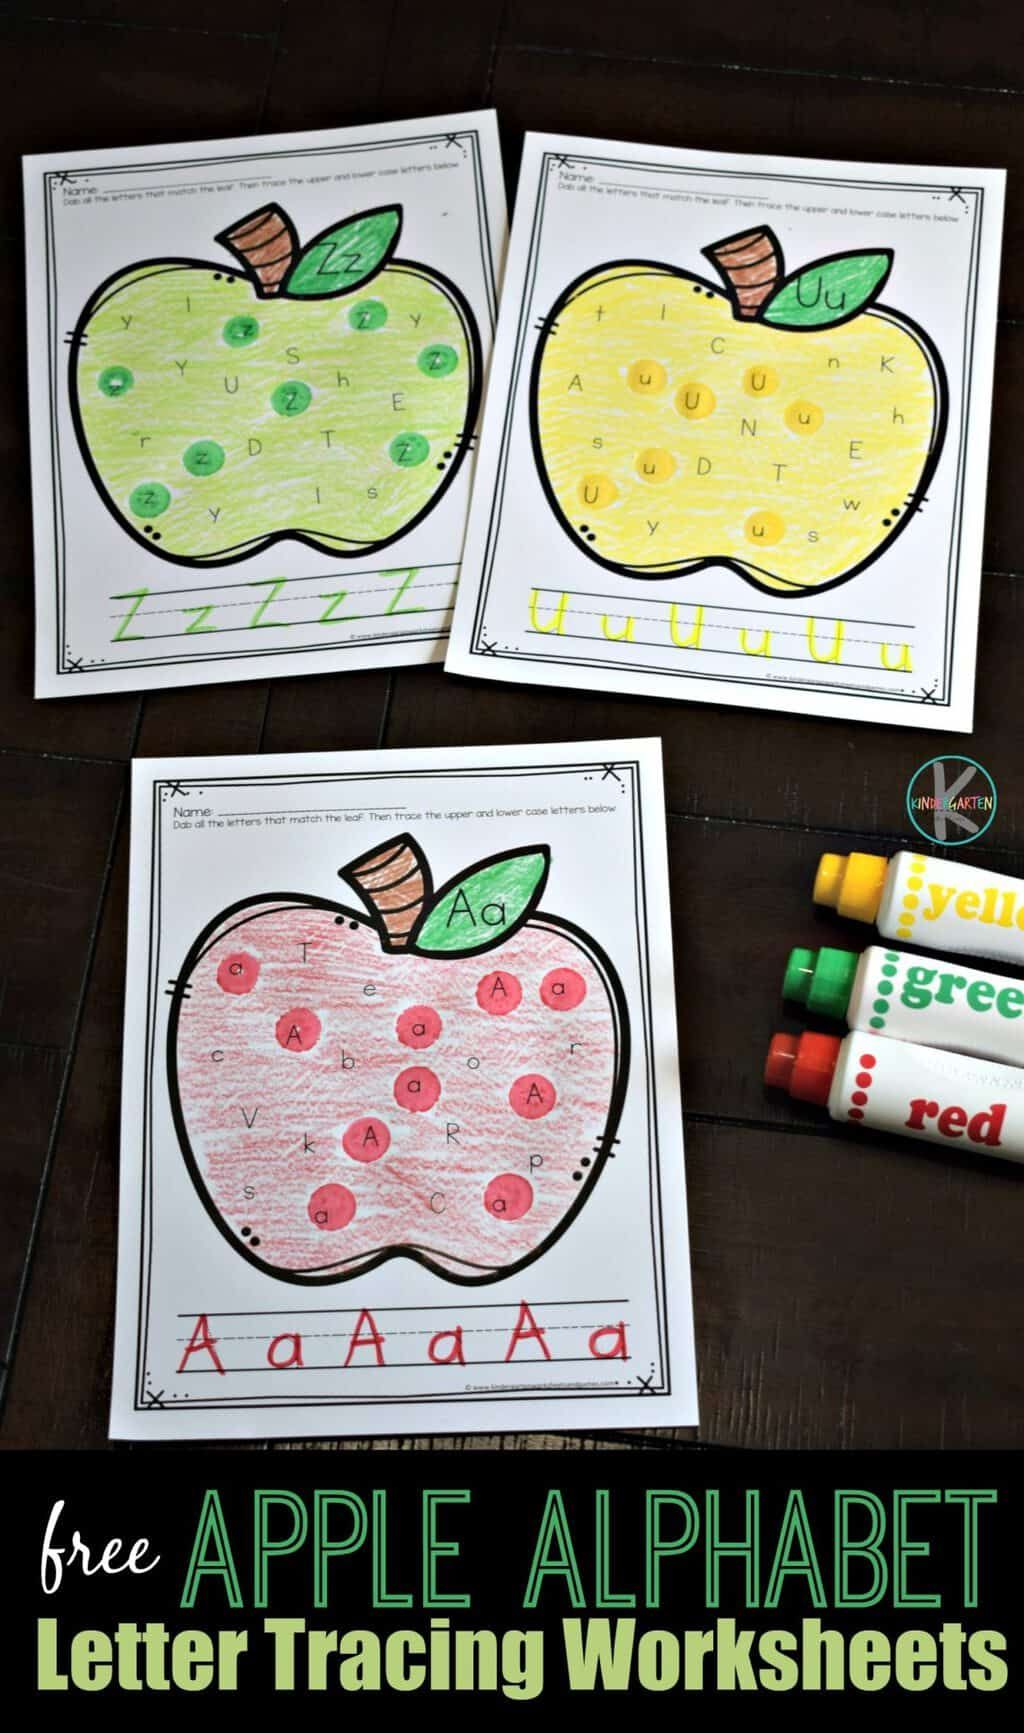 Free Apple Alphabet Letter Tracing Worksheets